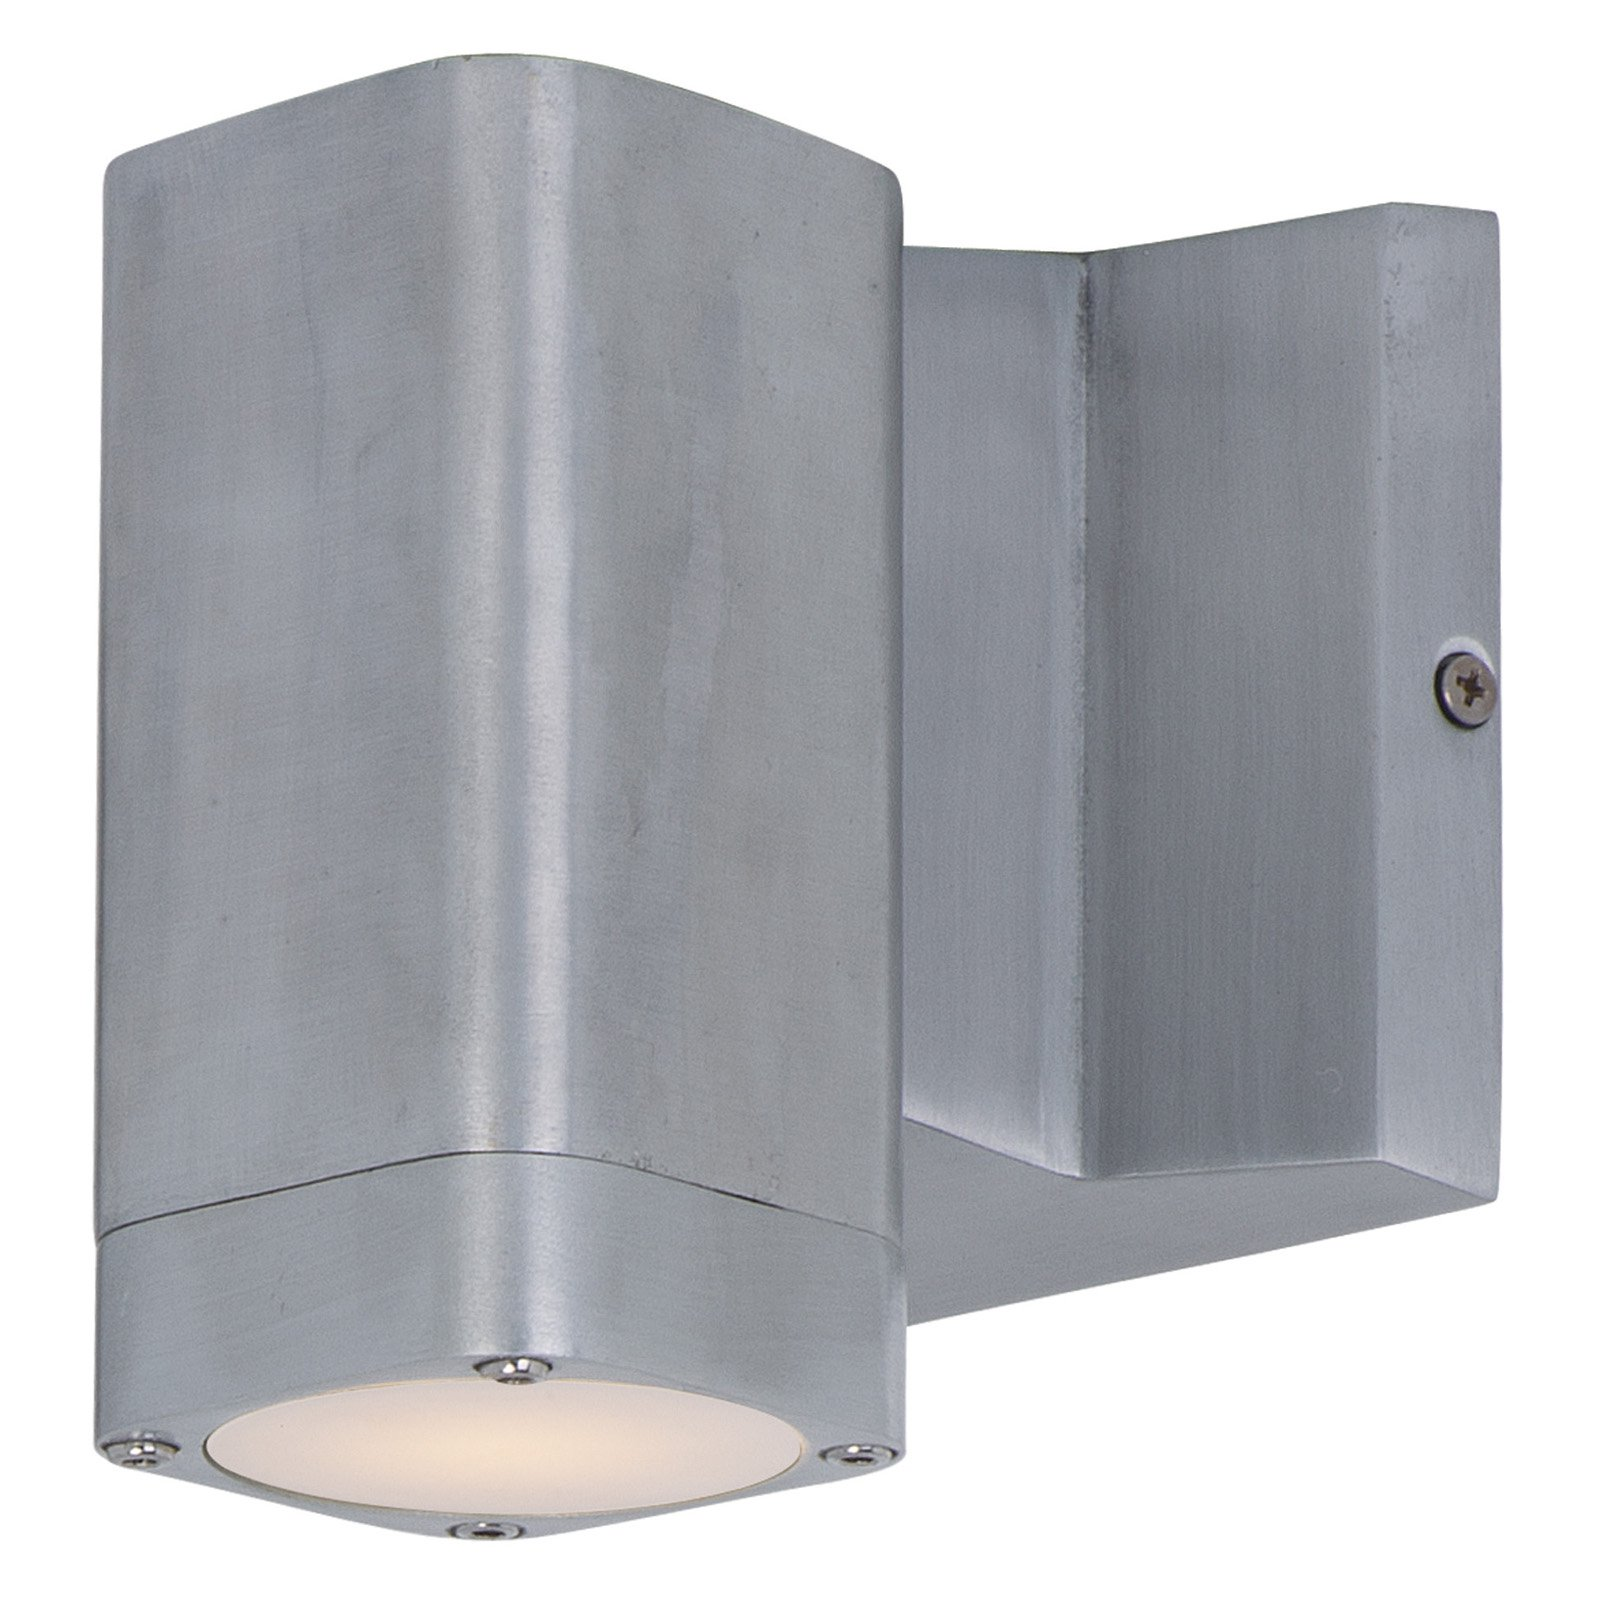 Maxim Lightray LED 86108 Outdoor Wall Sconce